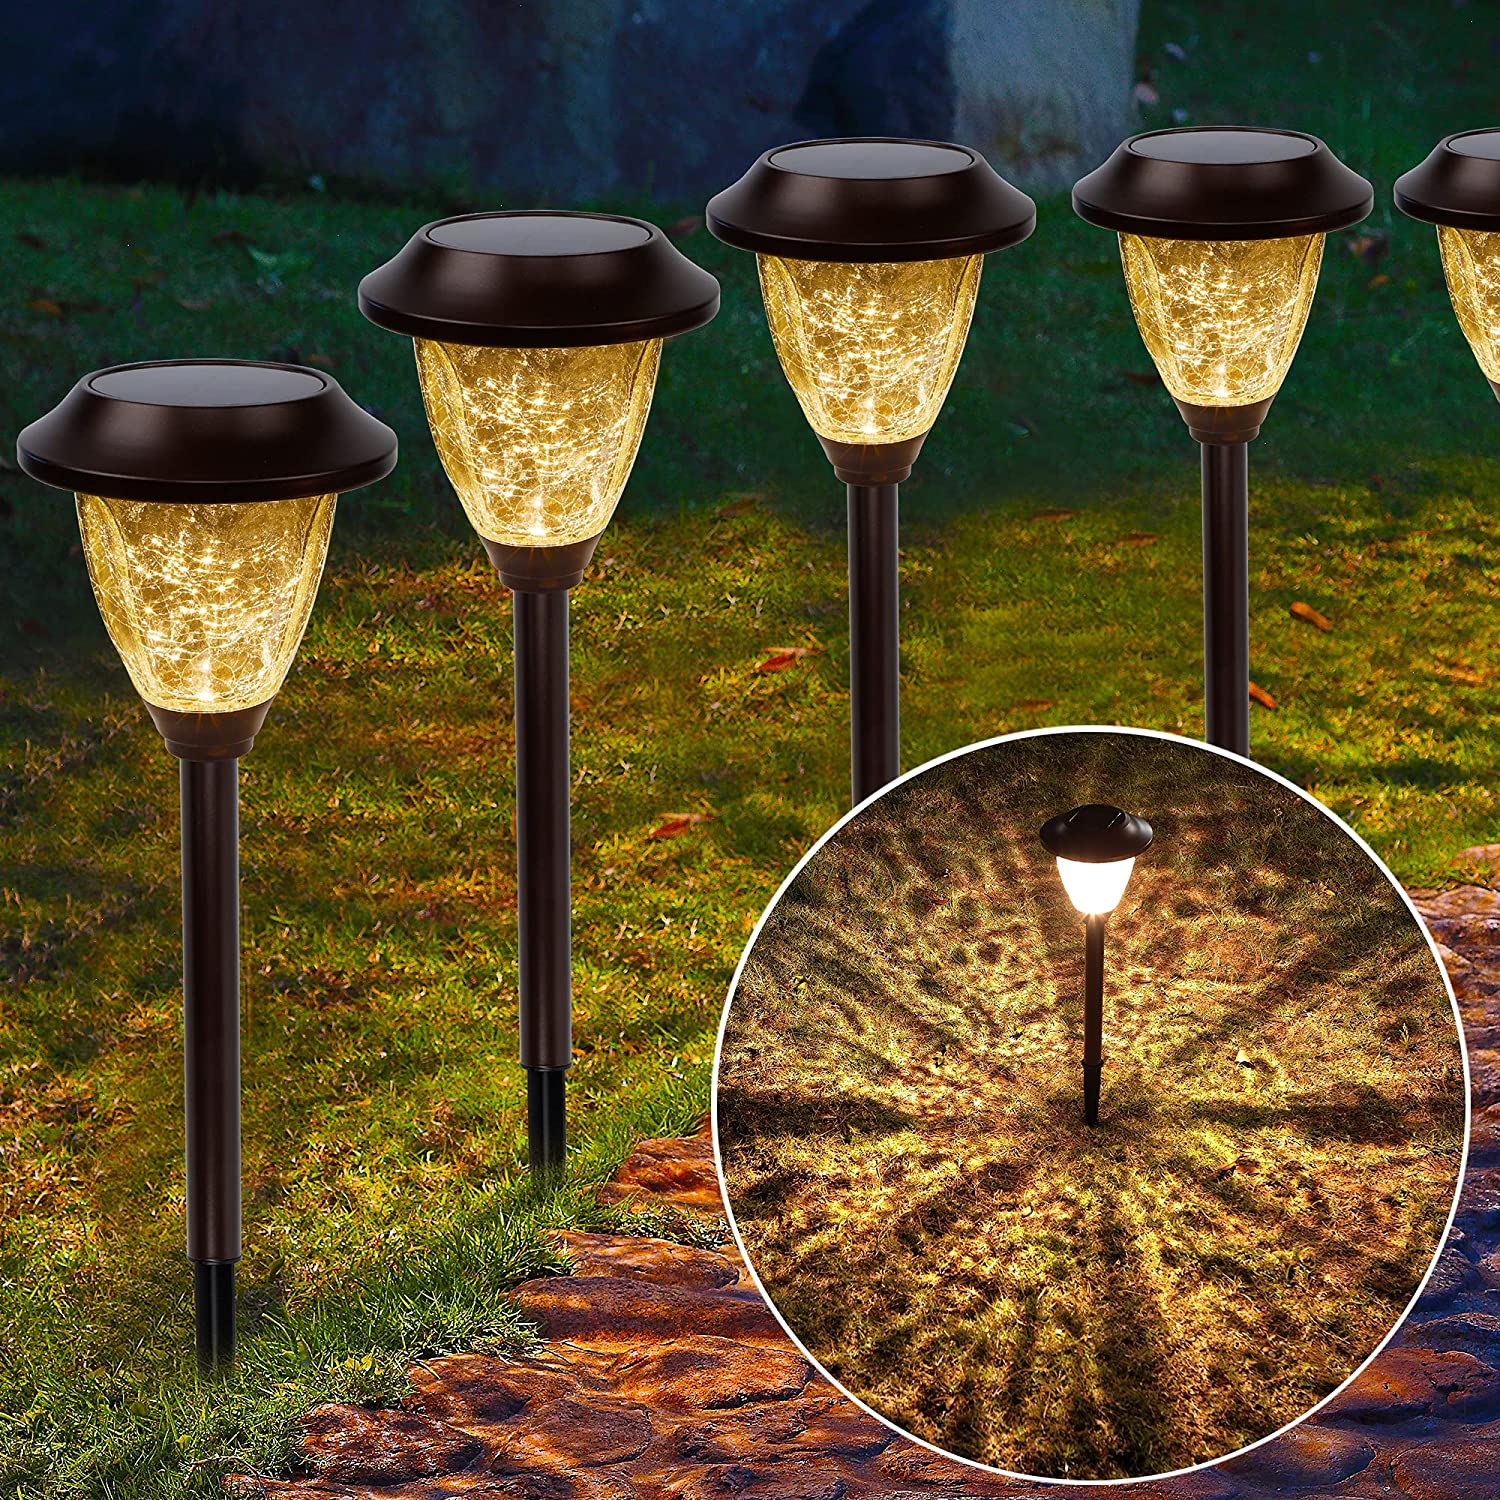 MAGGIFT 6 Pack Solar Powered Pathway Lights, 25 Lumen Super Bright SMD LED Warm White, Brown Stainless Steel and Glass Garden Light, Outdoor Waterproof for Landscape, Patio, Walkway, Deck, Driveway